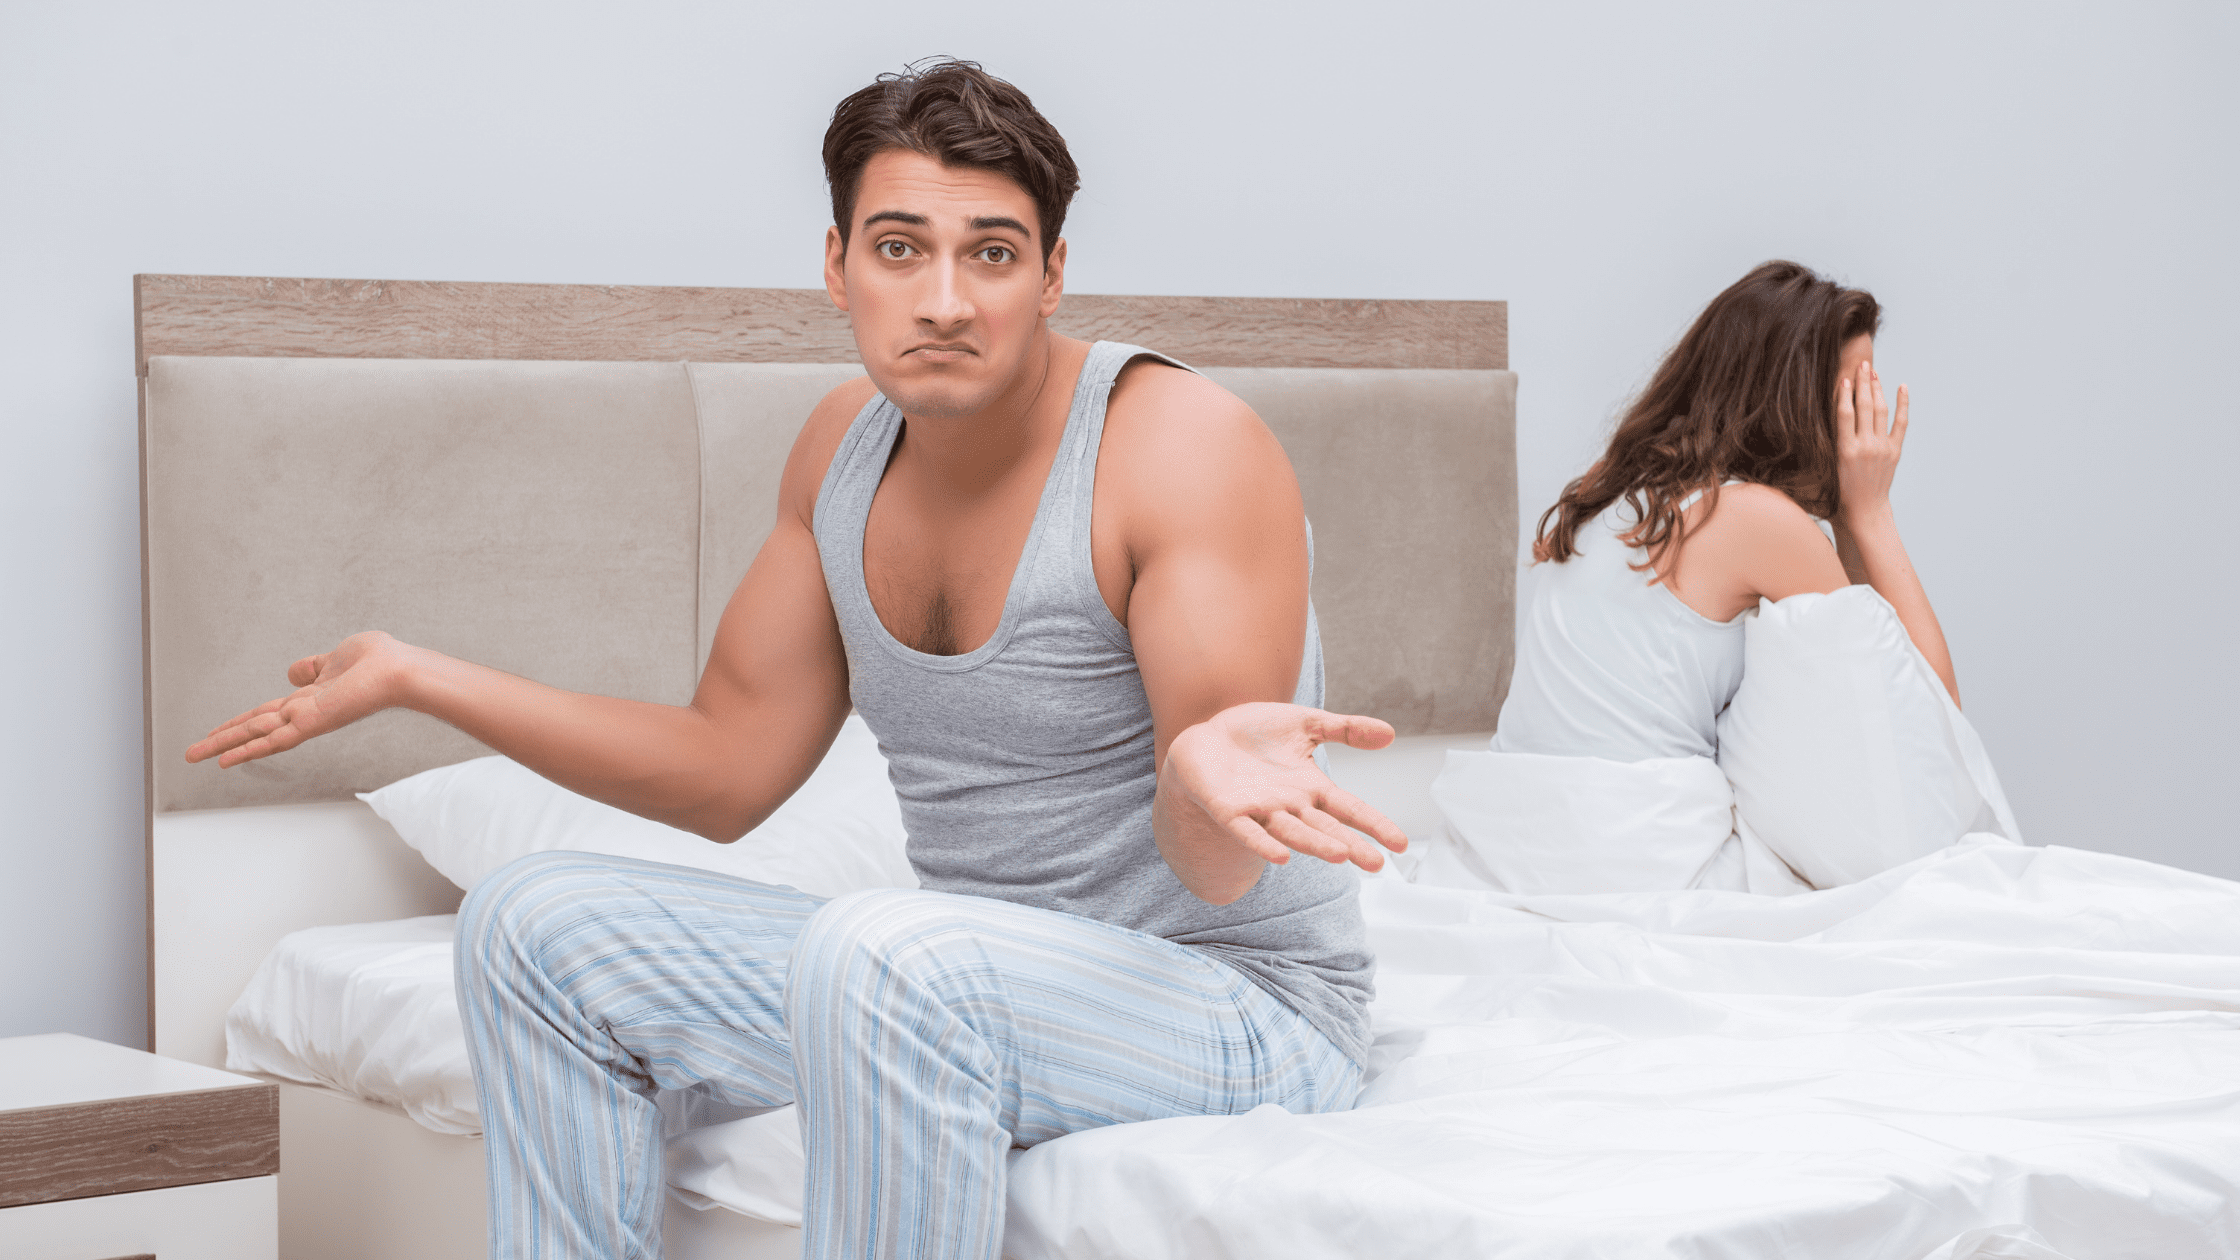 cbd oil may help with erectile dysfunction